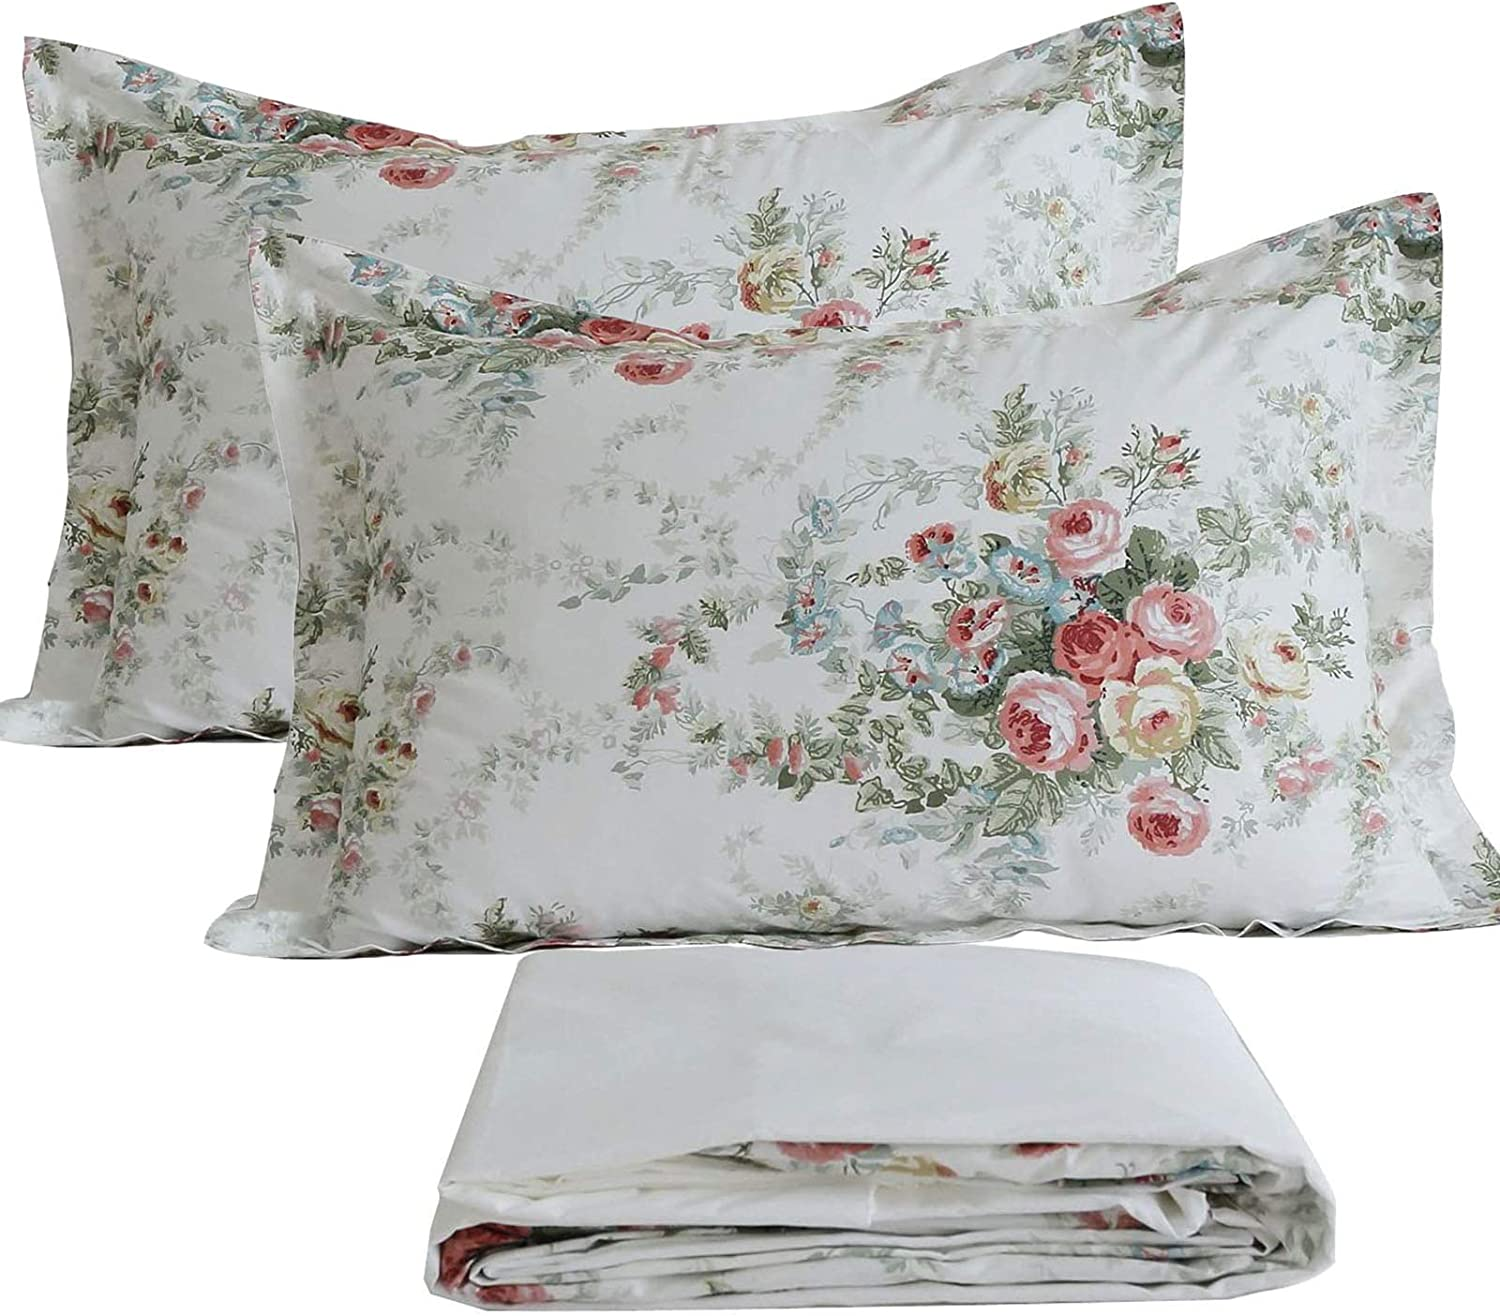 FADFAY Garden Floral Sheet Set Twin Vintage Rose 100% Cotton Hypoallergenic White and Grey Bed Sheets Ultra Soft Girls Princess Romantic Rose Kids Bedroom Deep Pocket Fitted Sheet 4-Pcs